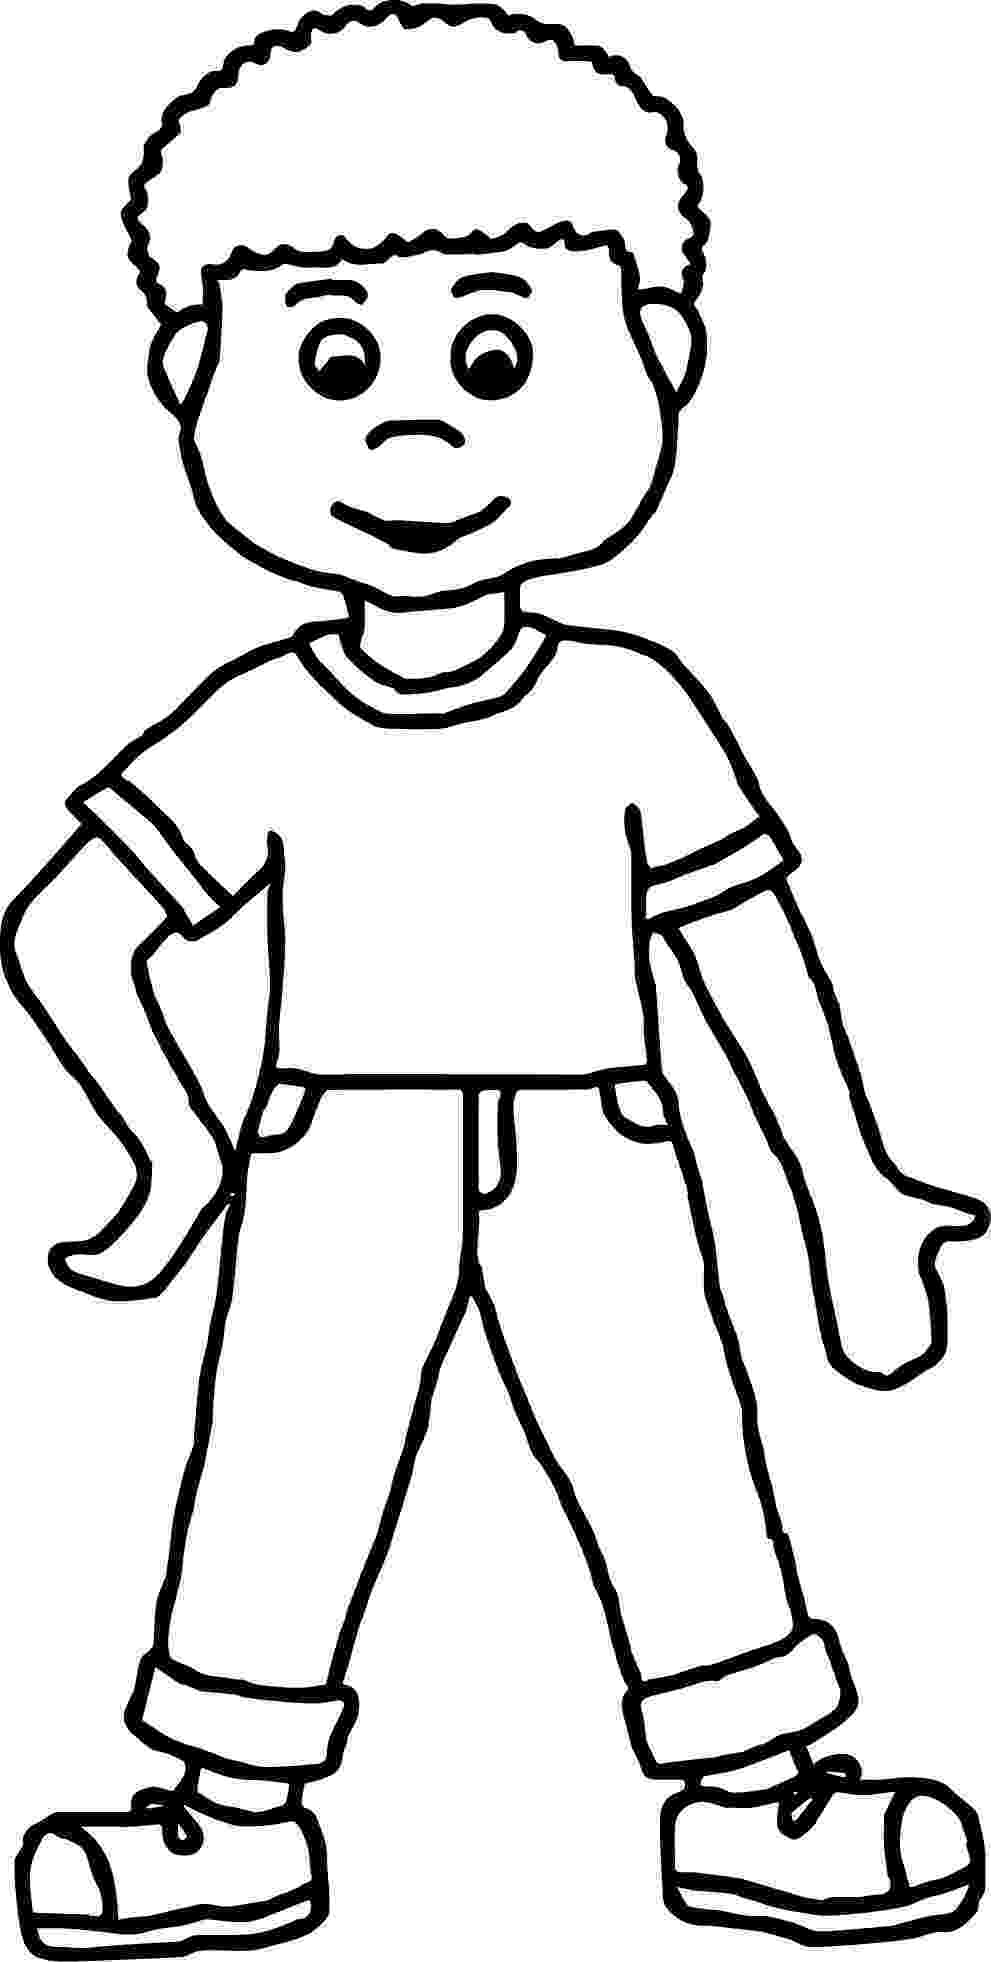 coloring page for boys people boy coloring page wecoloringpagecom for coloring page boys